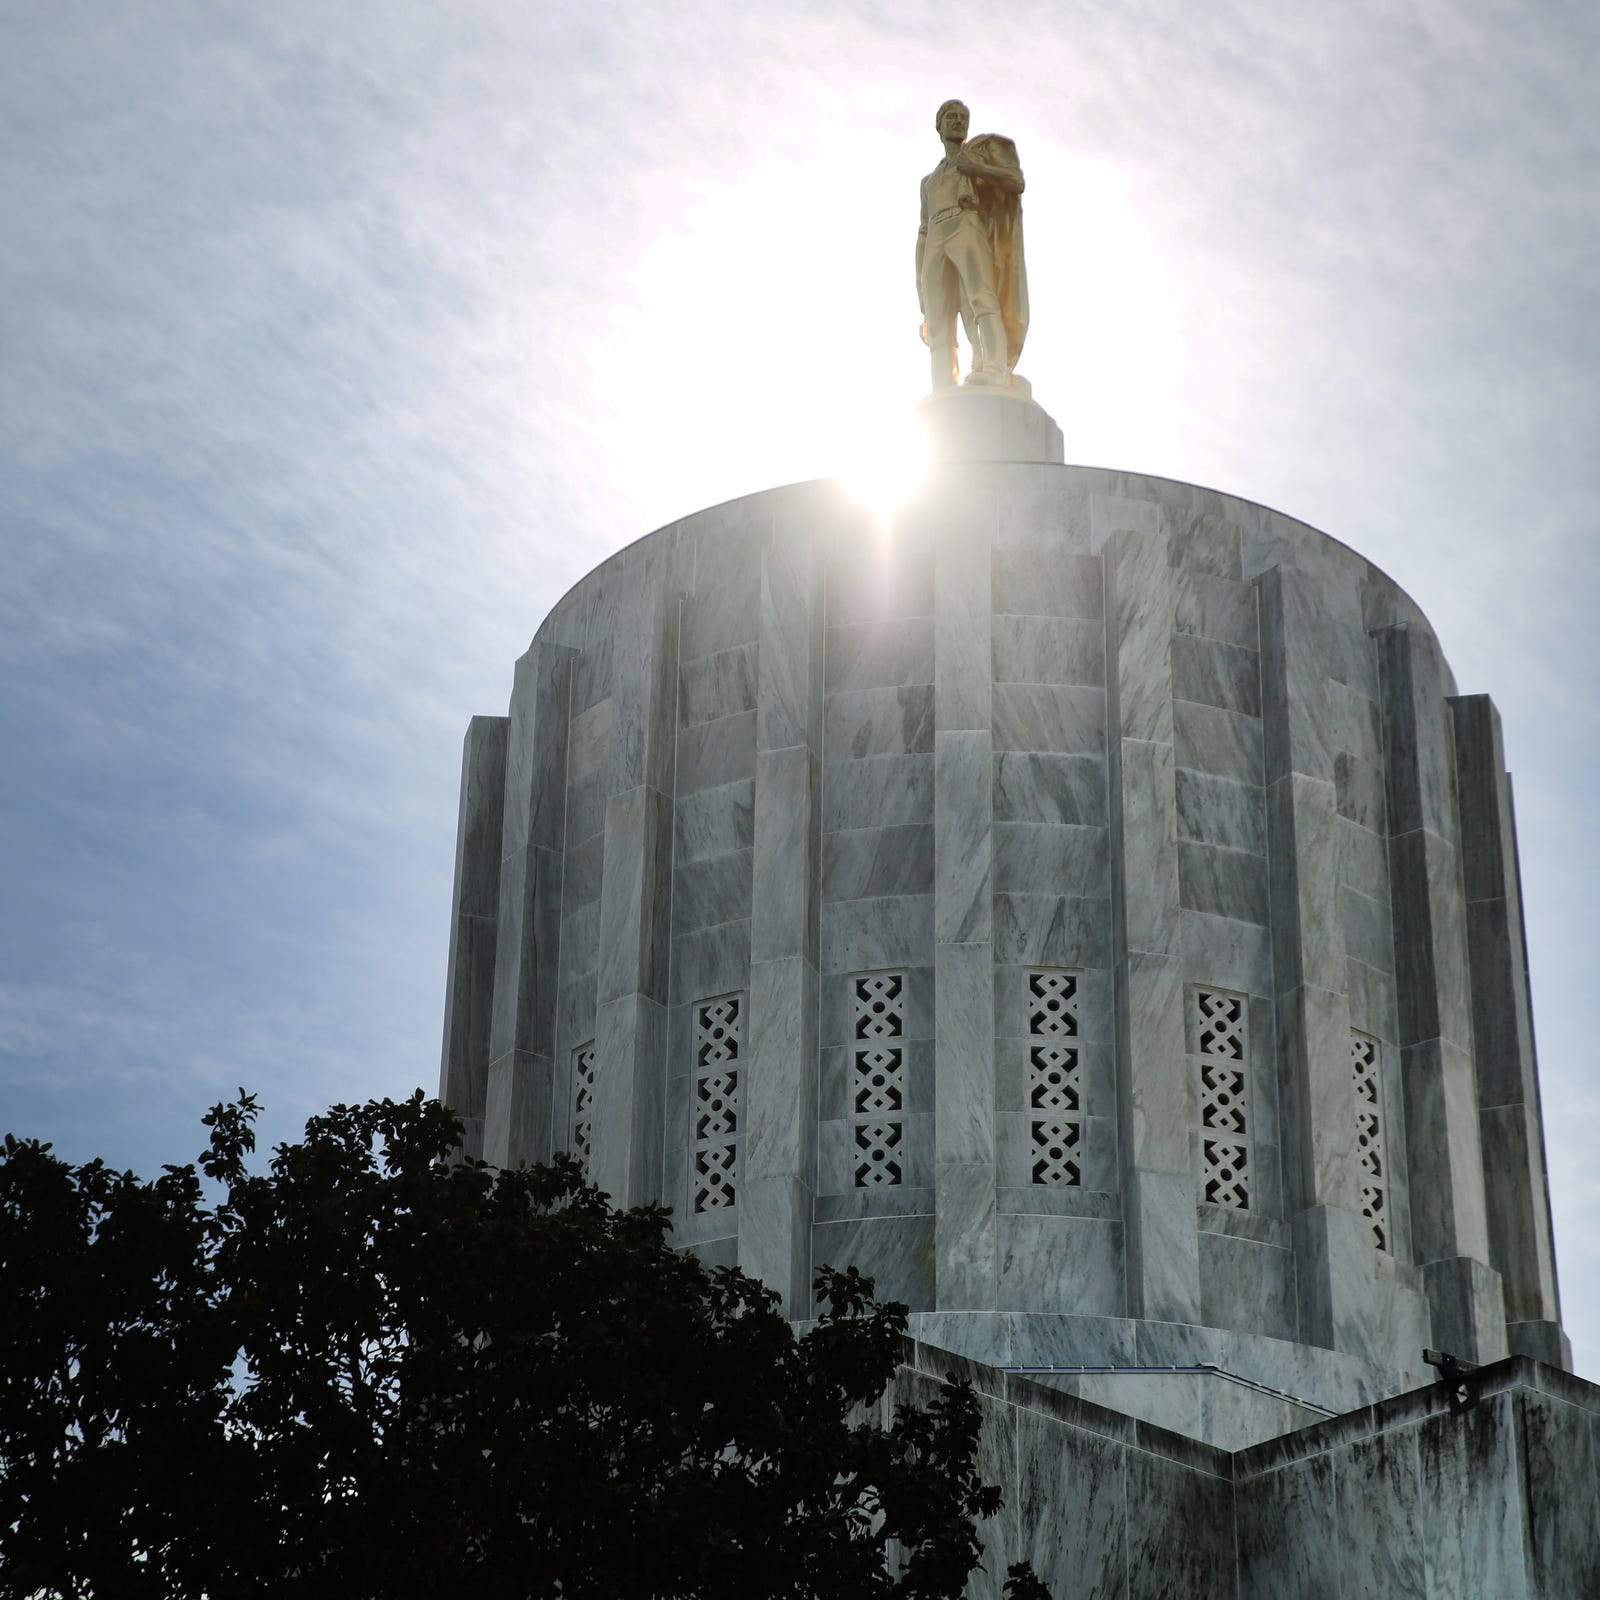 K-12 schools get more money in Oregon legislative budget, cuts elsewhere